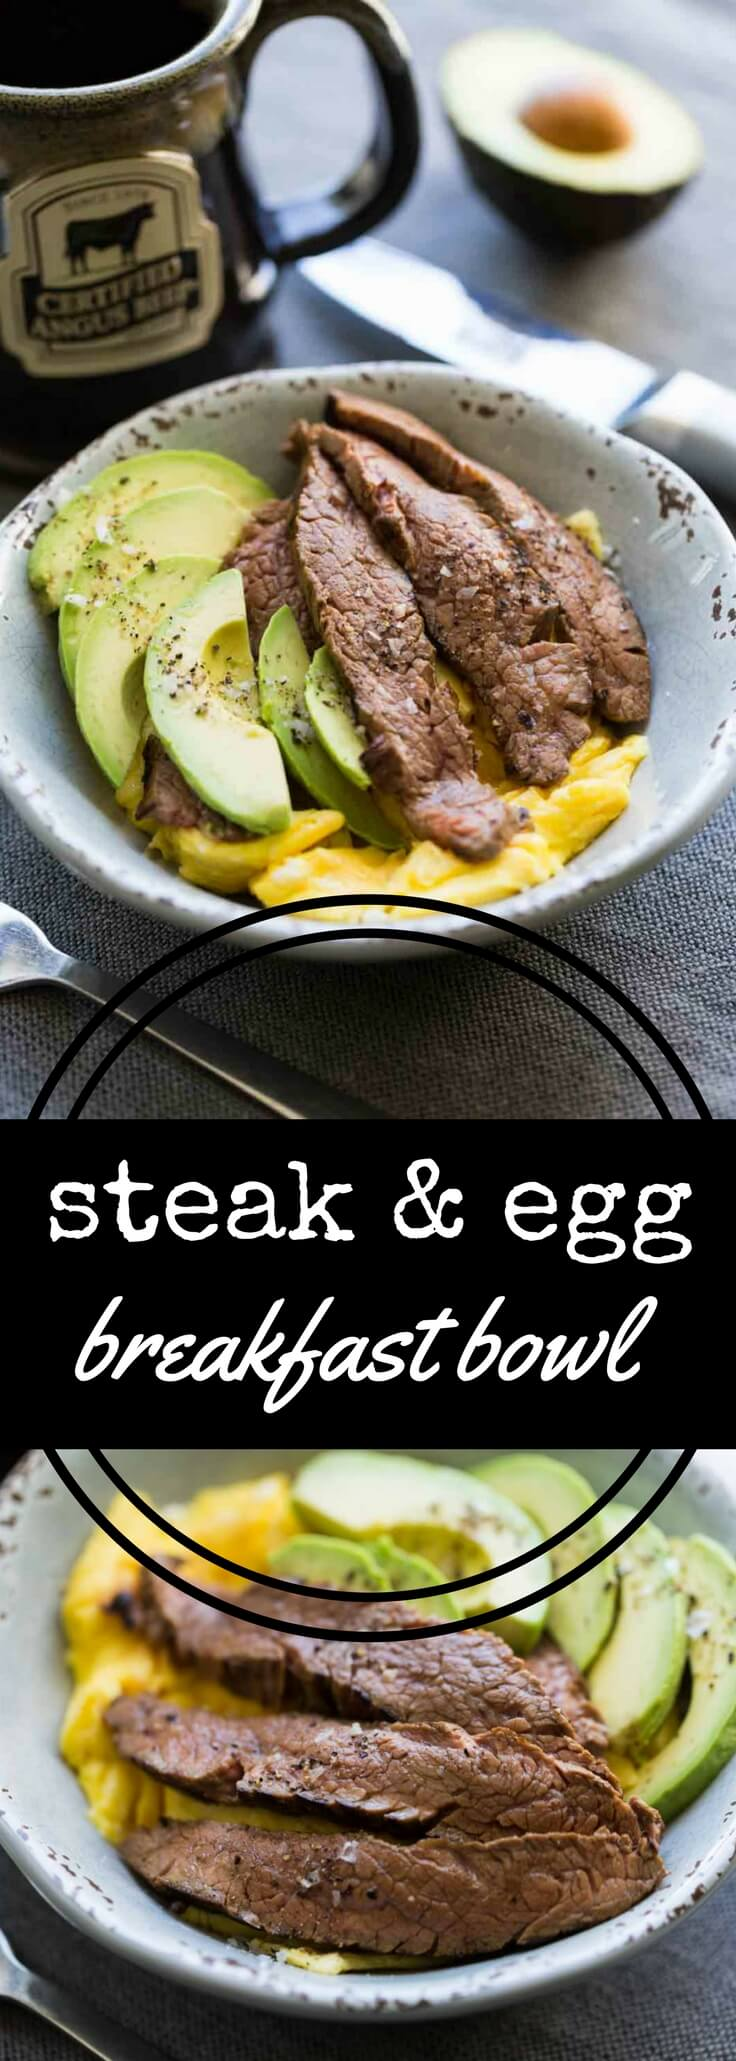 This keto diet friendly steak and egg breakfast bowl combines marinated flank steak plus scrambled eggs along with sliced avocado, all garnished with flake salt and cracked black pepper.